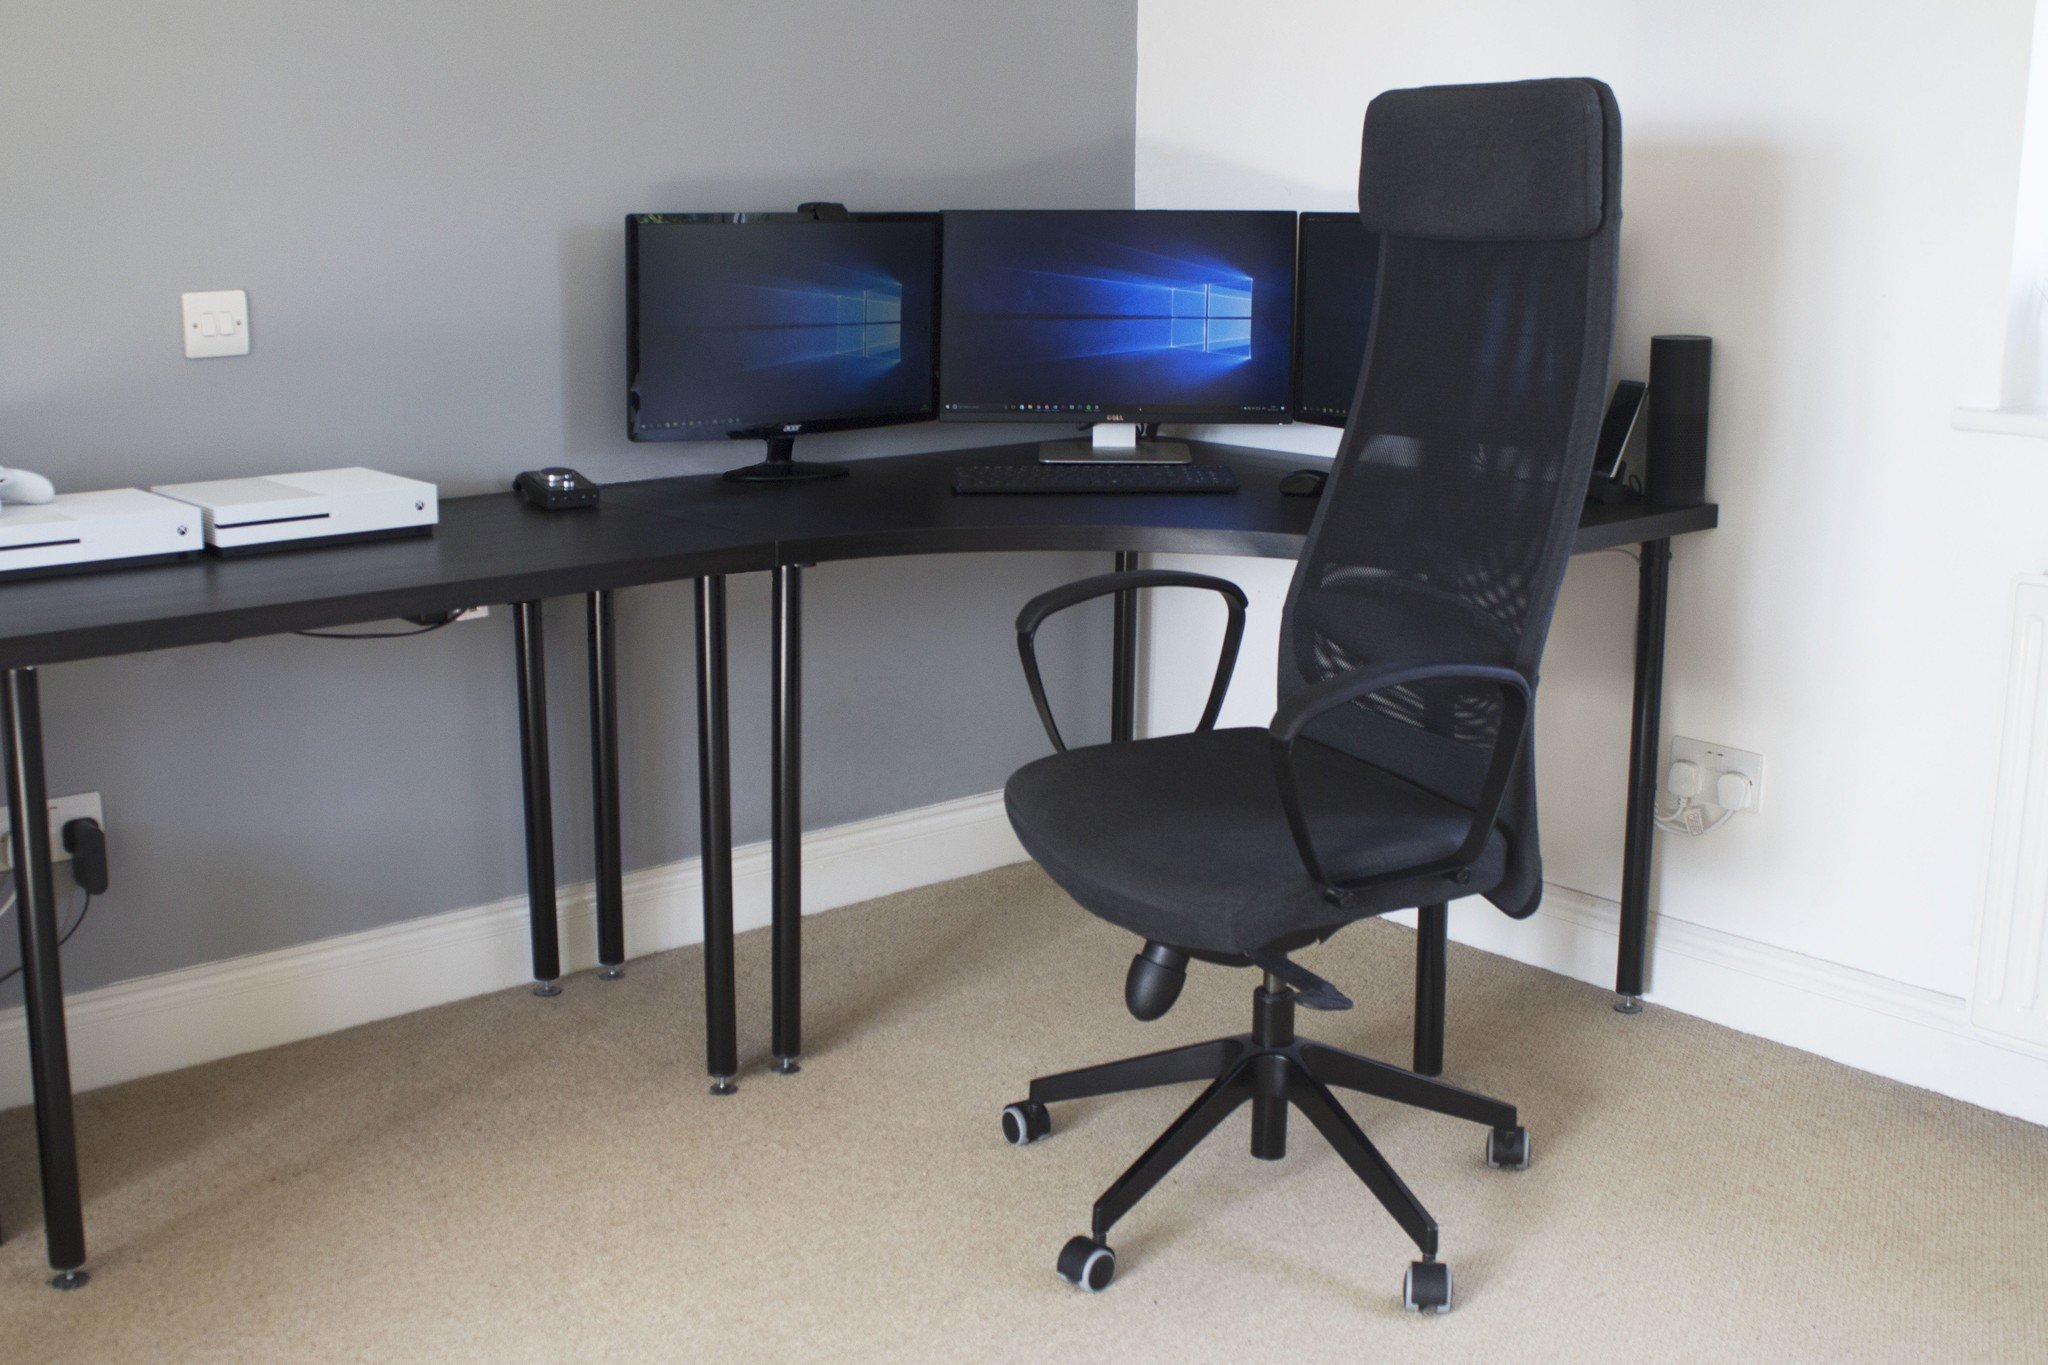 Ikea Markus Office Chair Review High Back Comfort Without A High Price Windows Central